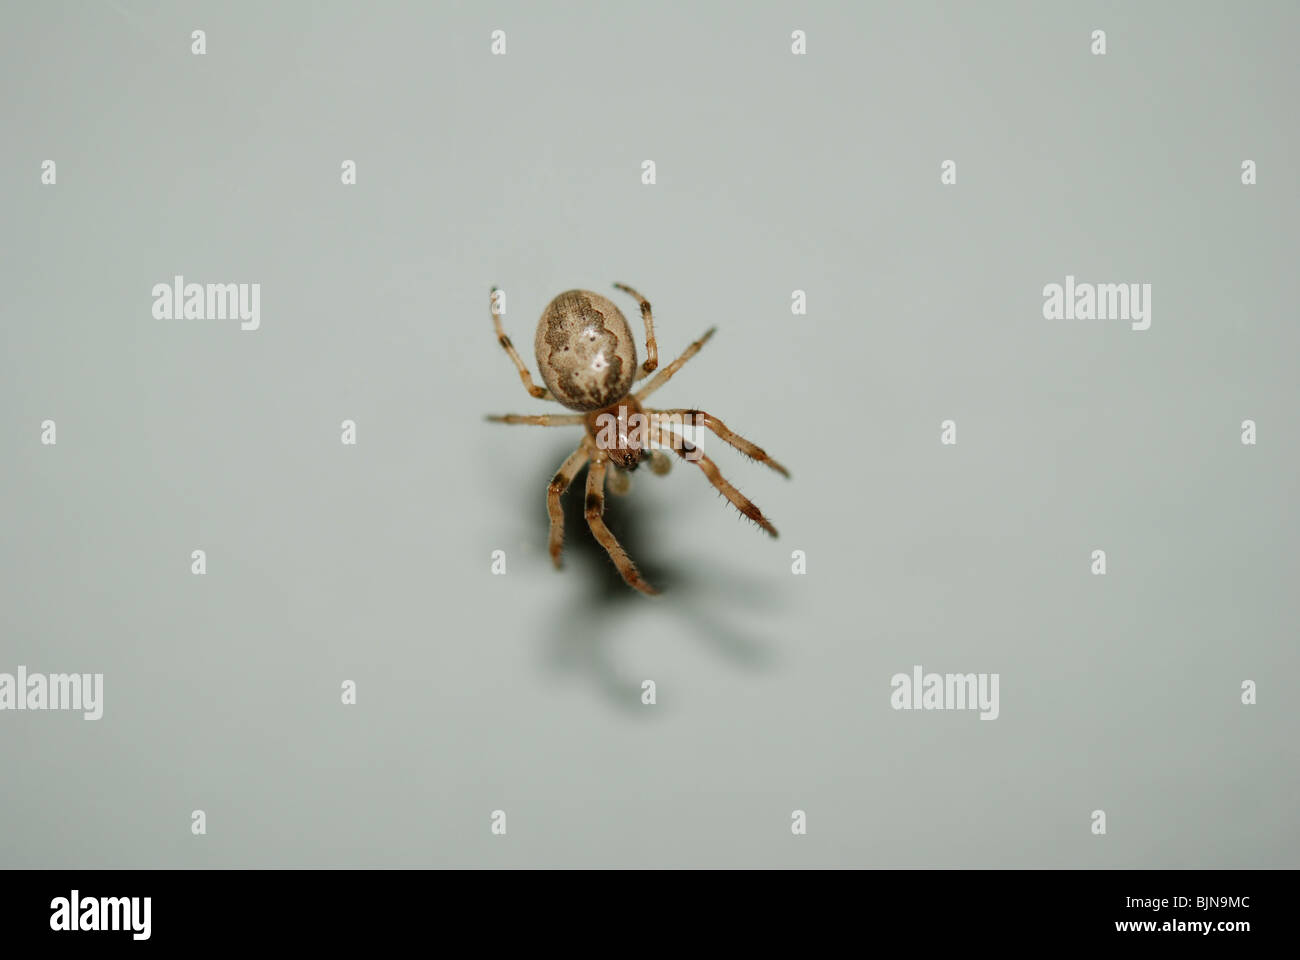 Metellina (meta) segmentata spider against a white background. - Stock Image